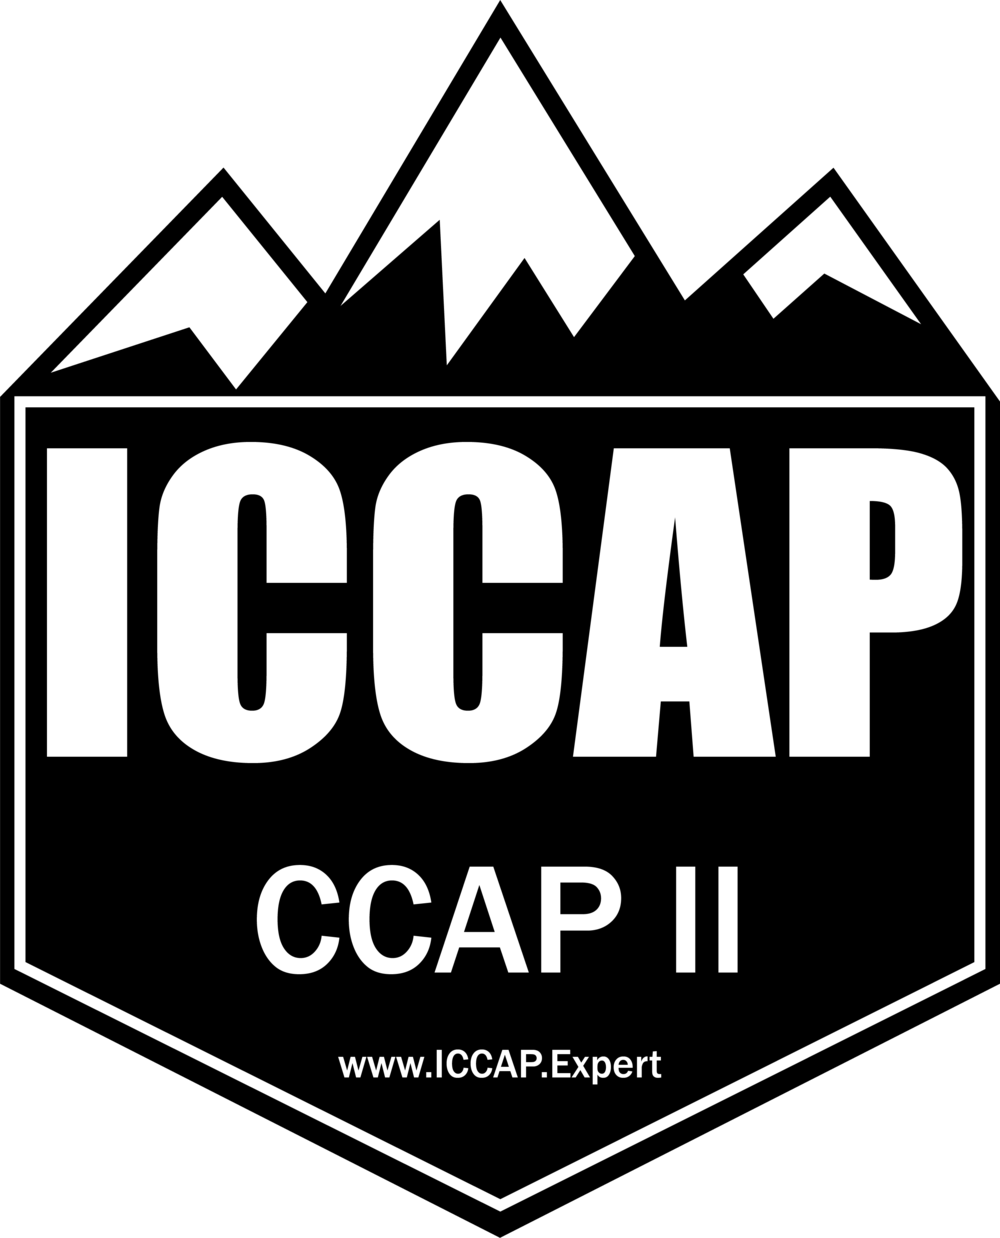 iccap-ccap-II-advocacy-marketing-certification.png